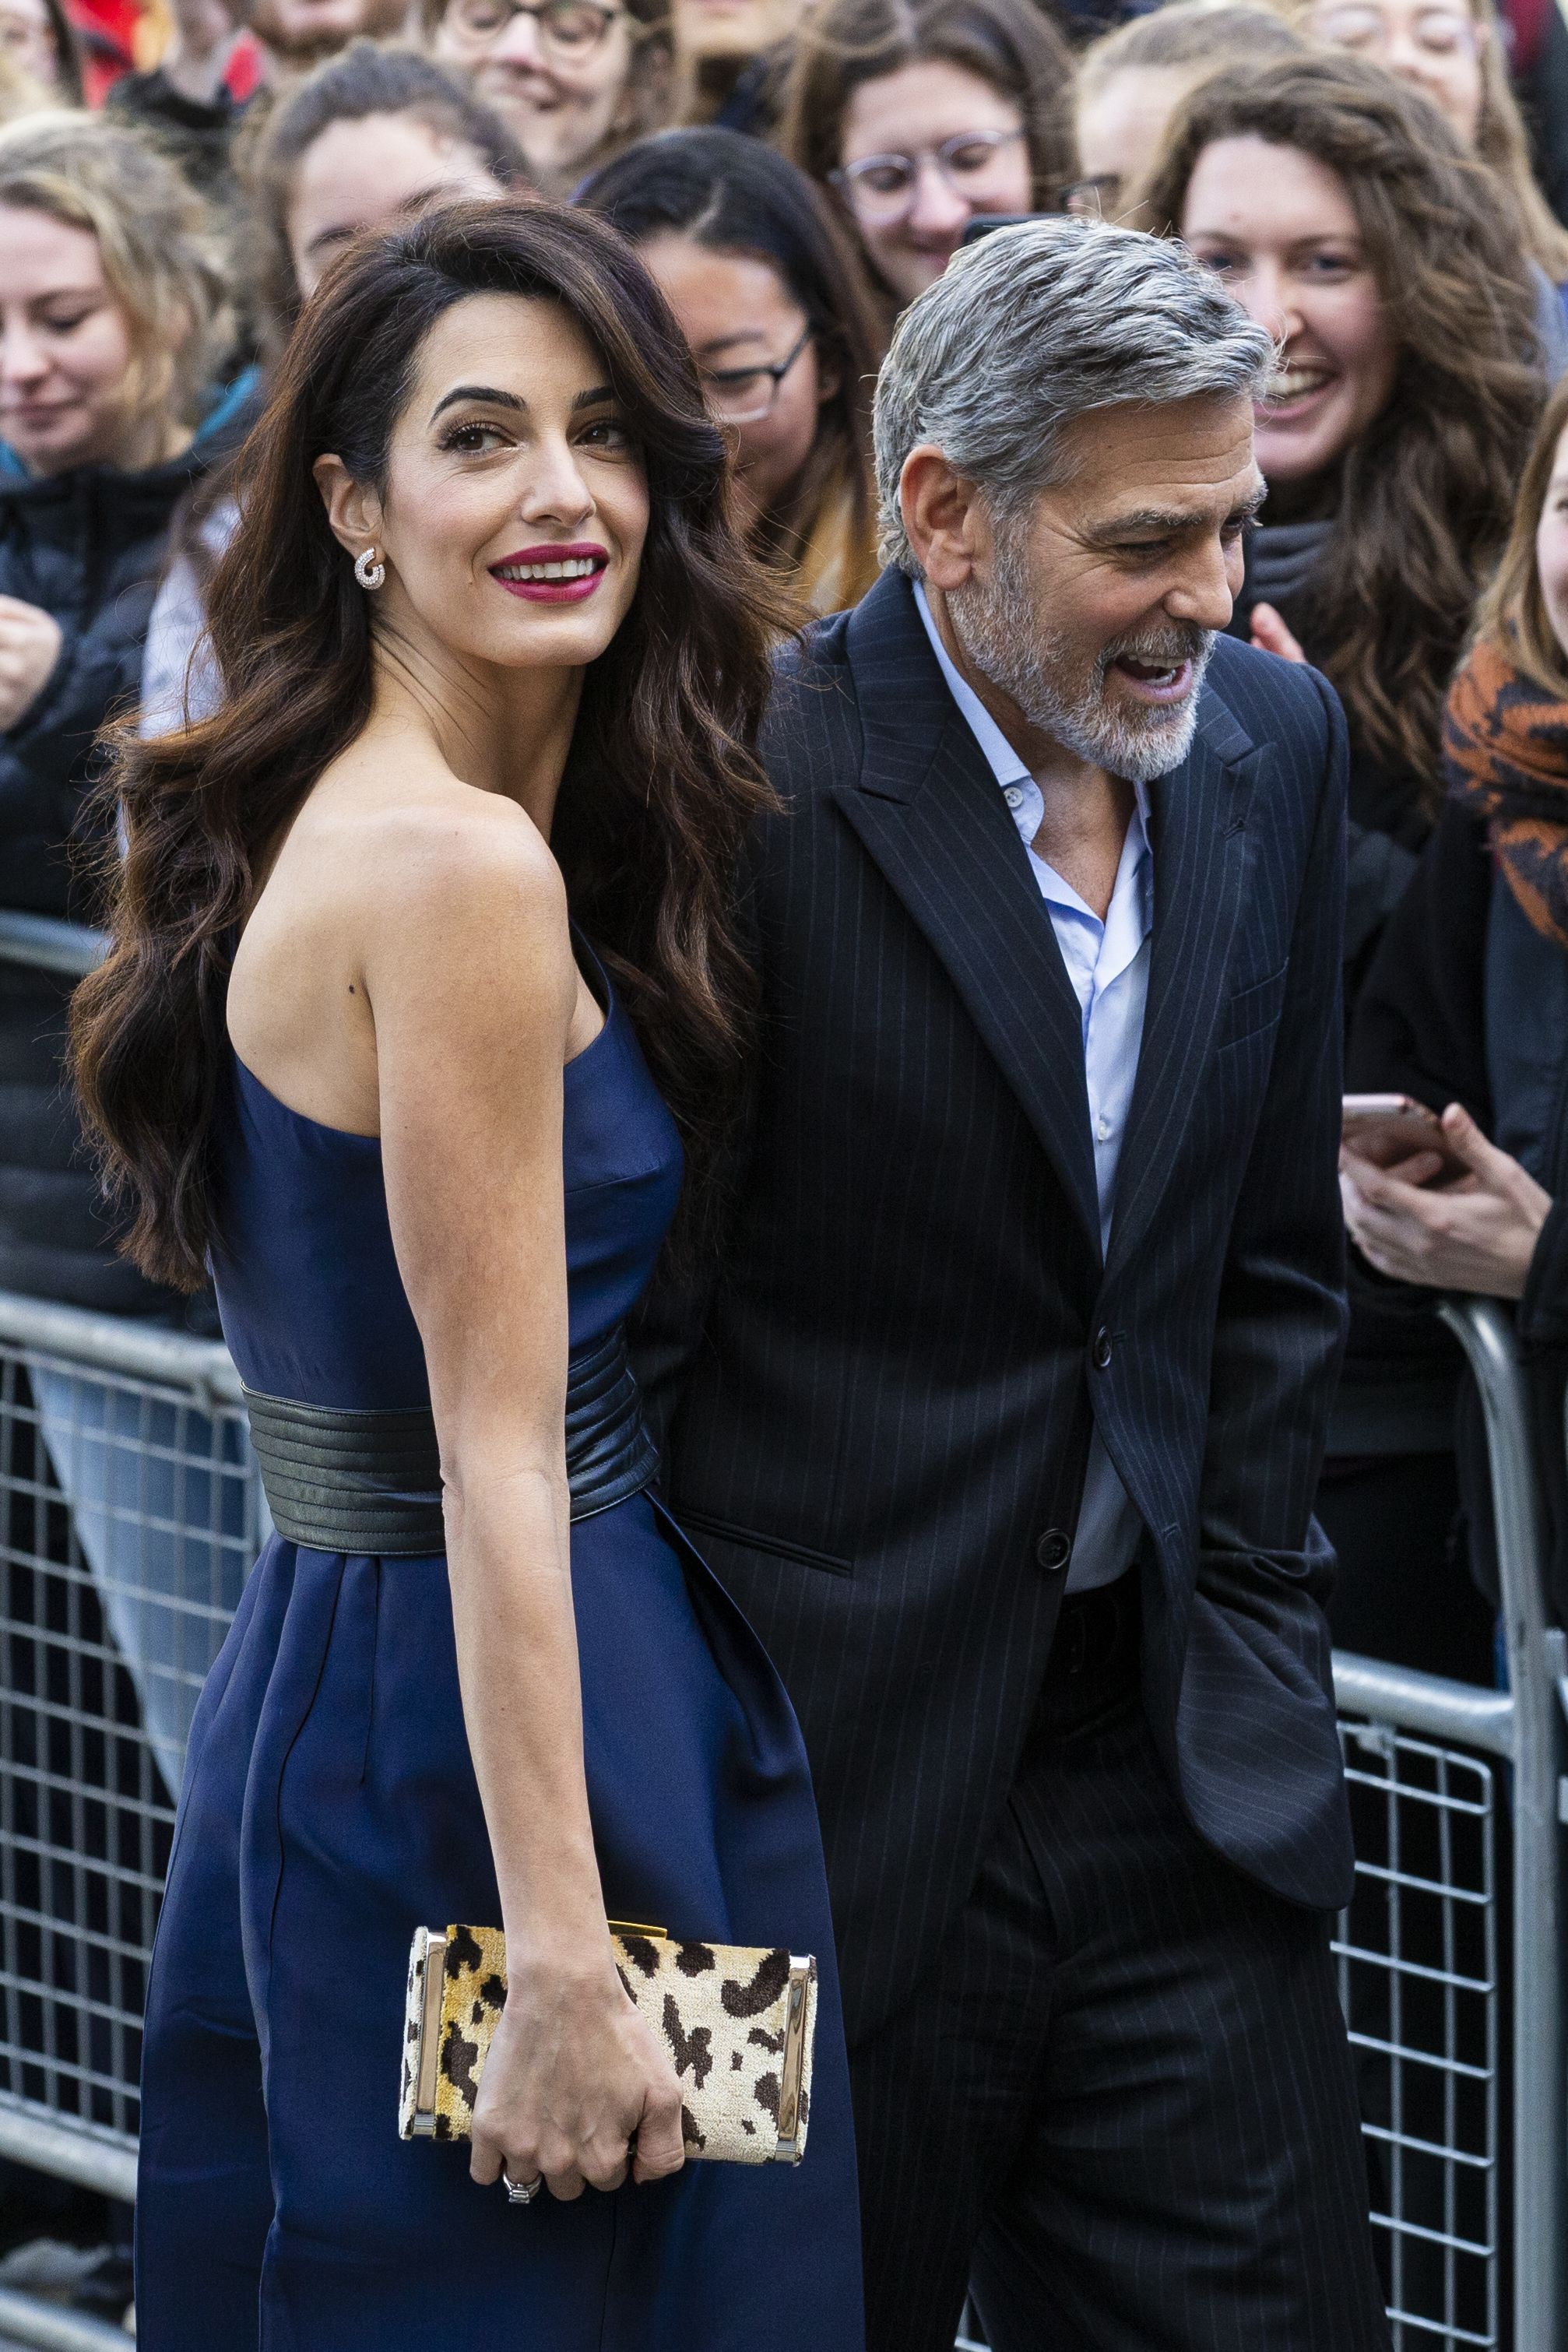 63e9e6b2b6cd Amal Clooney Best Style Moments - Amal Clooney Fashion Photos